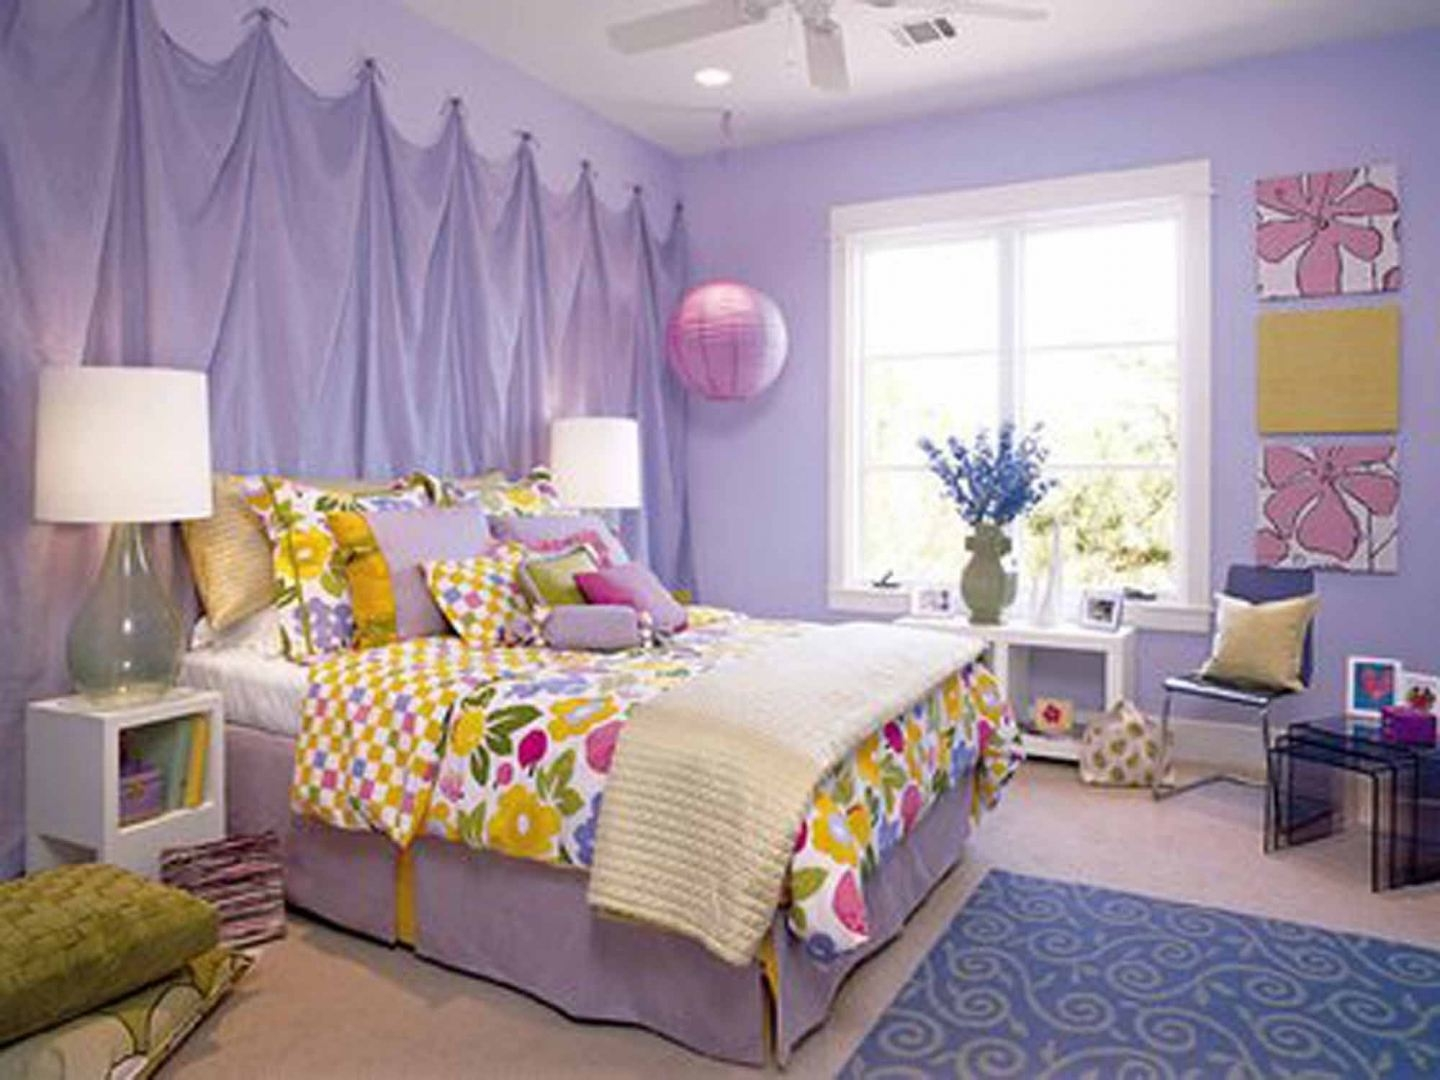 Toddler Room Decorating Ideas Purple Bedcover Feat White Fur Rug In Purple Curtains For Kids Room (Image 25 of 25)